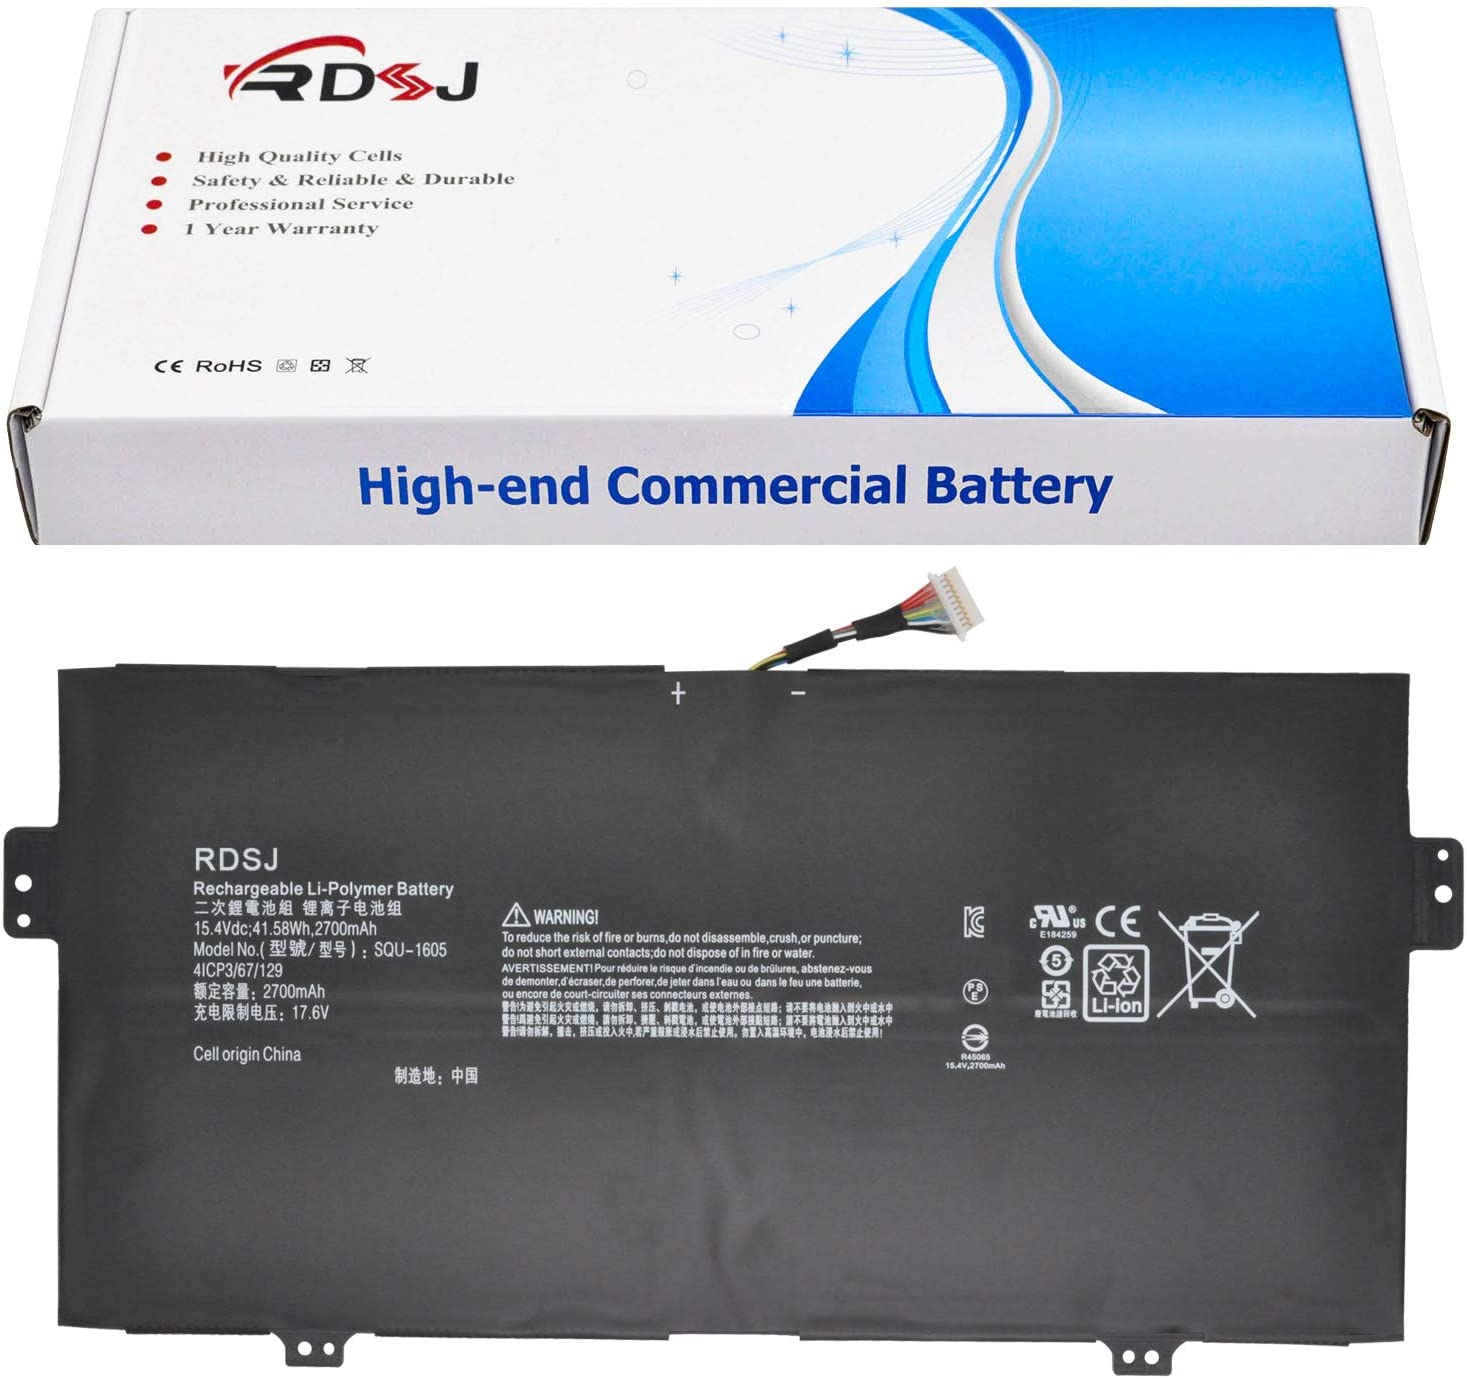 SQU-1605 Laptop Battery for Acer Spin 7 SP714-51 SF713-51 Swift 7 S7-371 SF713 SF713-51 SF713-51-M90J Series 4ICP3/67/129 KT0040B001 15.4V 41.58Wh